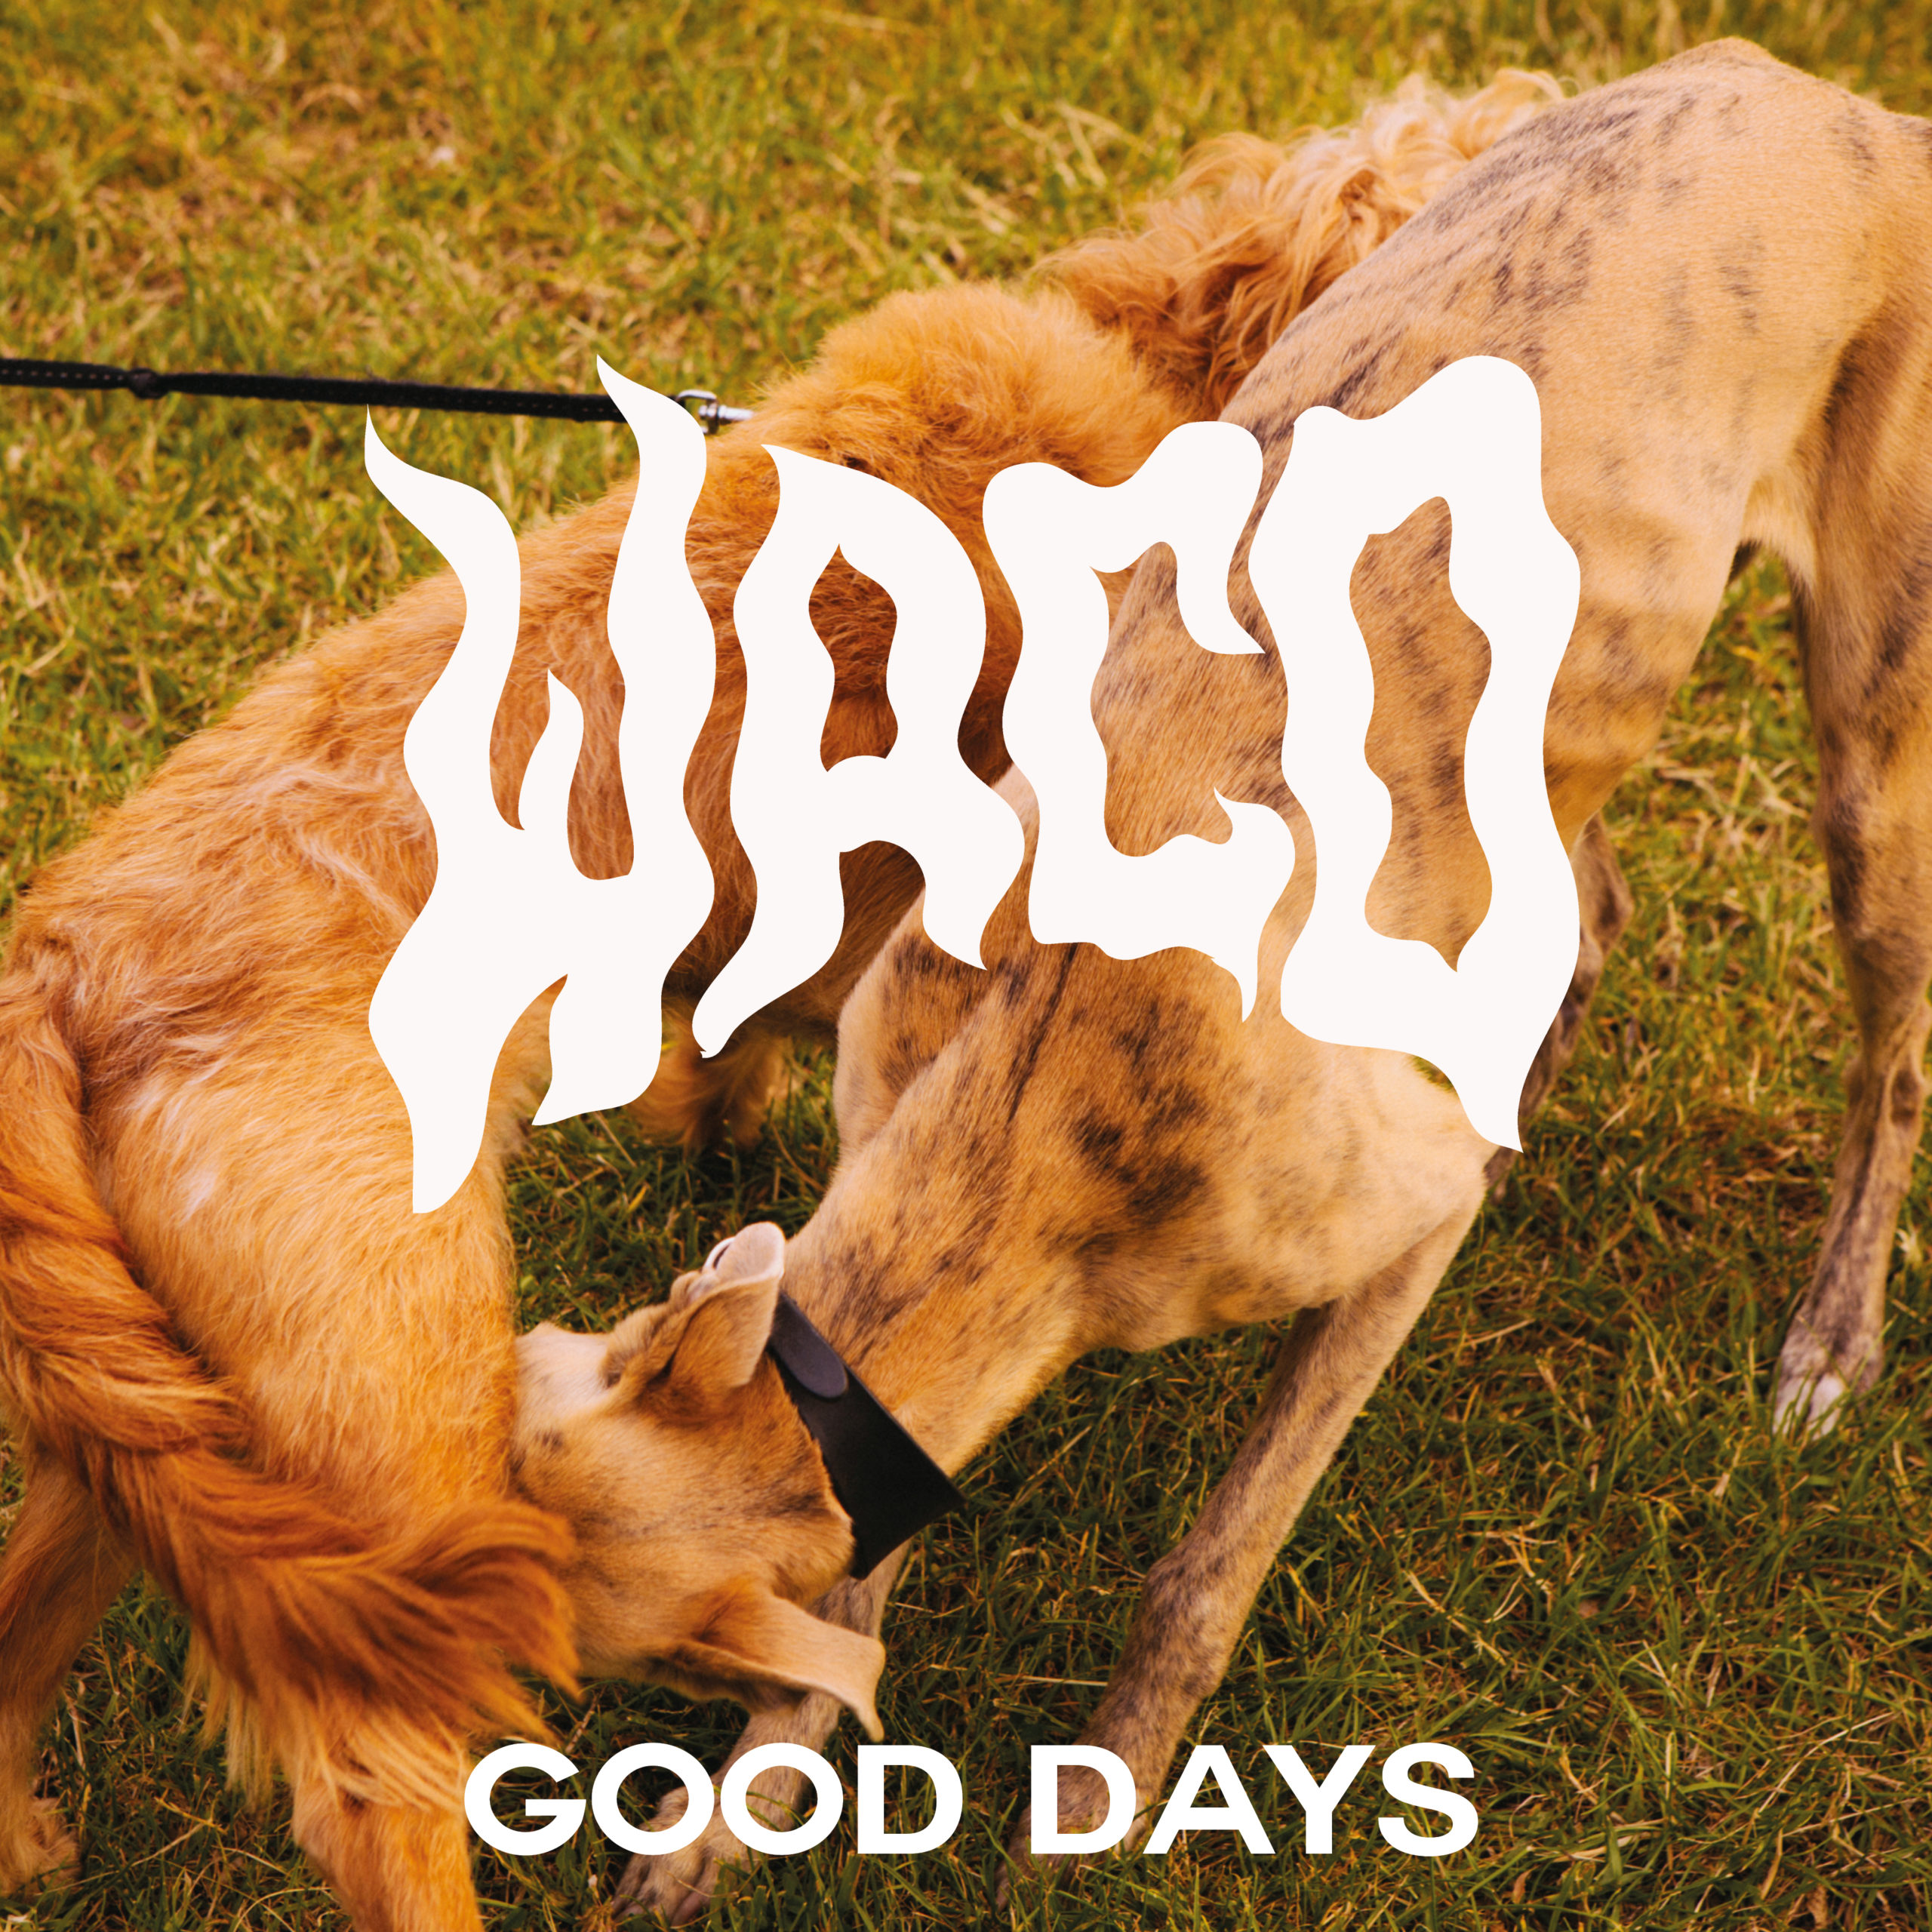 Waco-Good Days